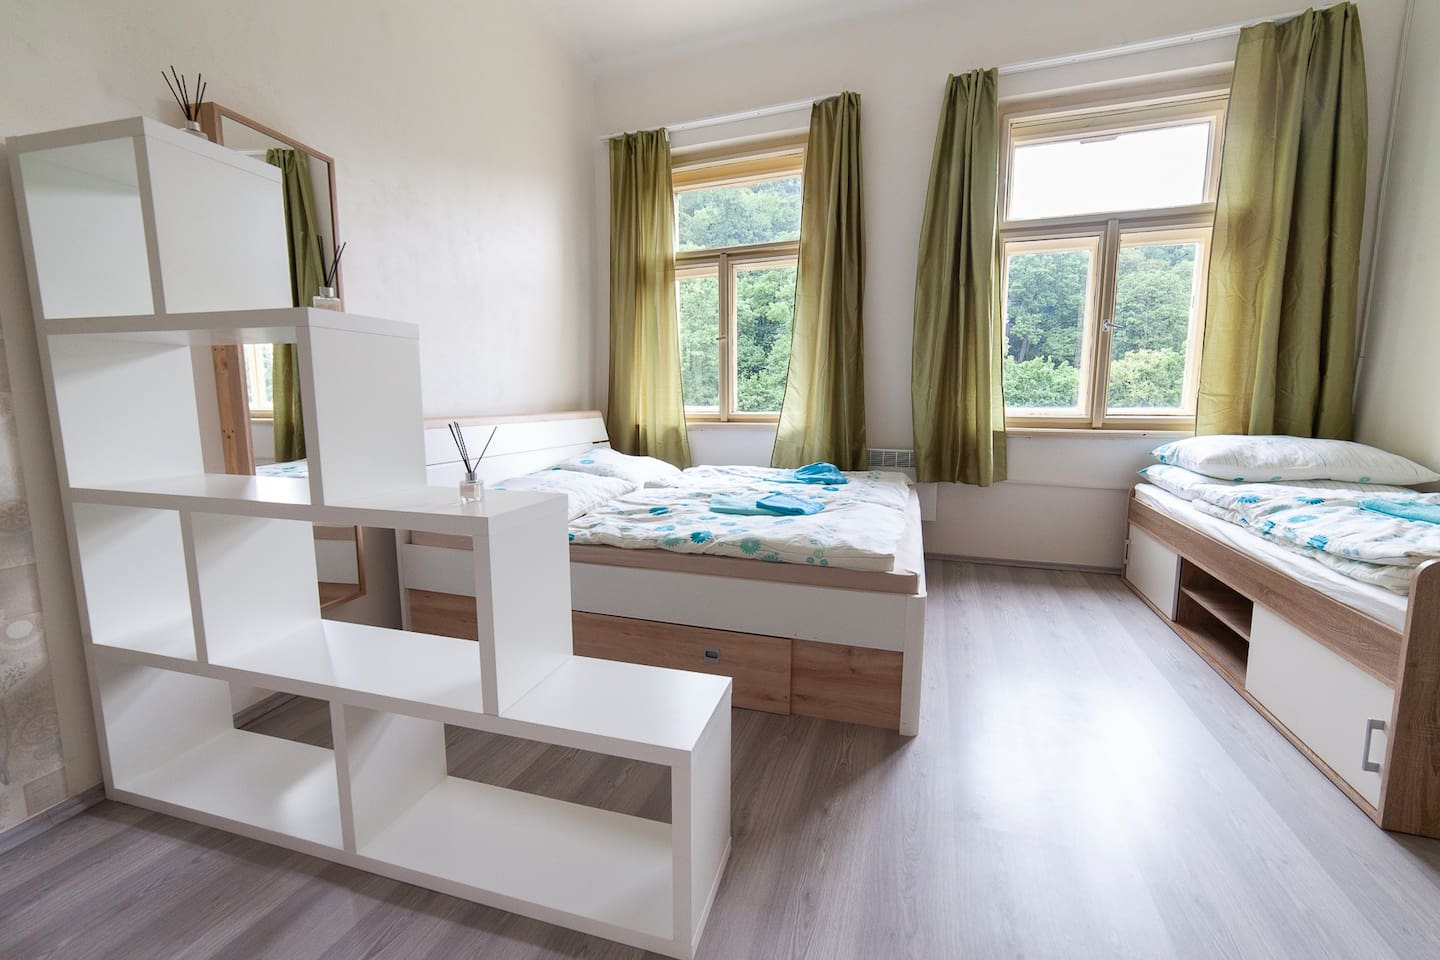 Brand new beds and ferniture, the view is just fenomenous to the Petrin Hill Park just steps away from Prague Castle. The location is perfect